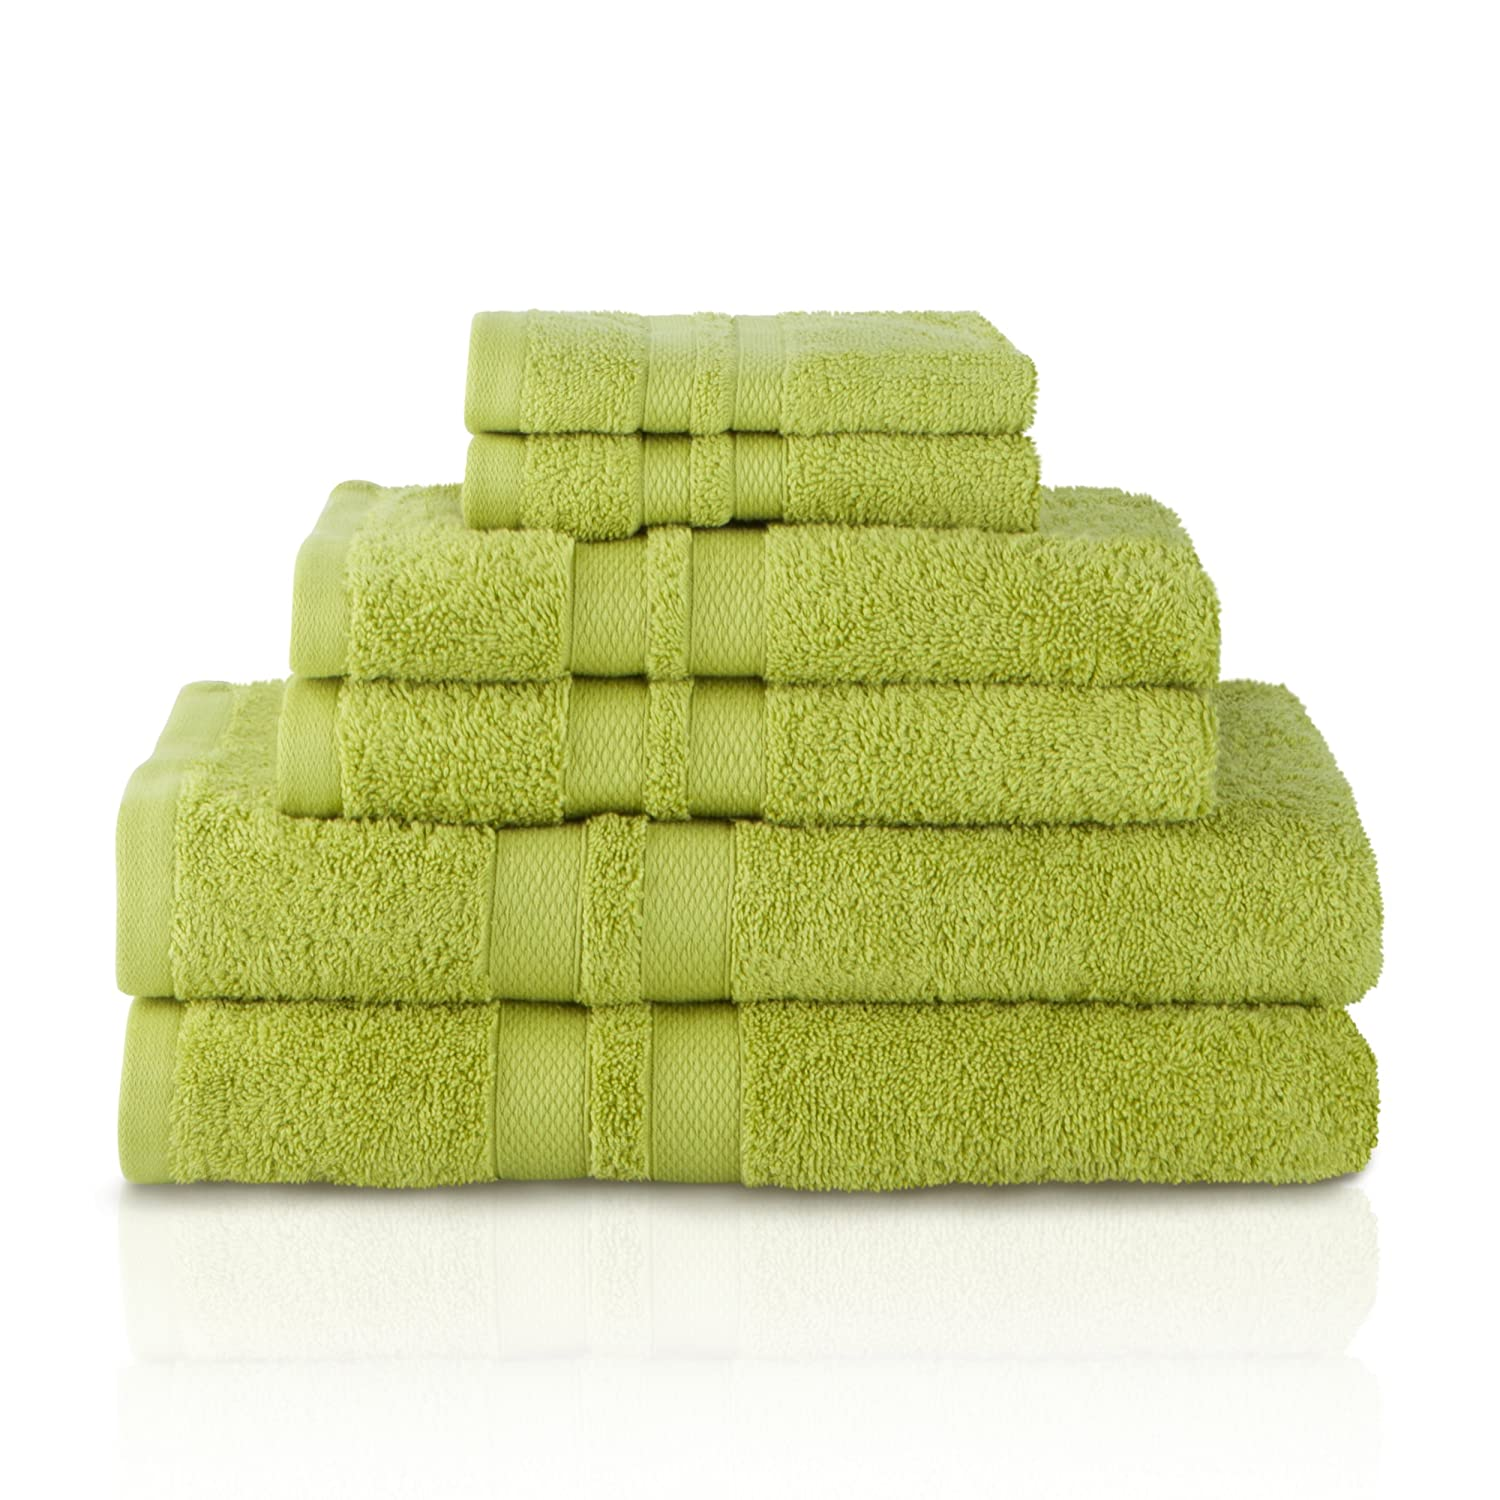 Superior 100% Premium Cotton Ultra Soft 6 Piece Towel Set, 2 Bath Towels, 2 Hand Towels, and 2 Washcloths with Unique Honeycomb Double Border, Celery